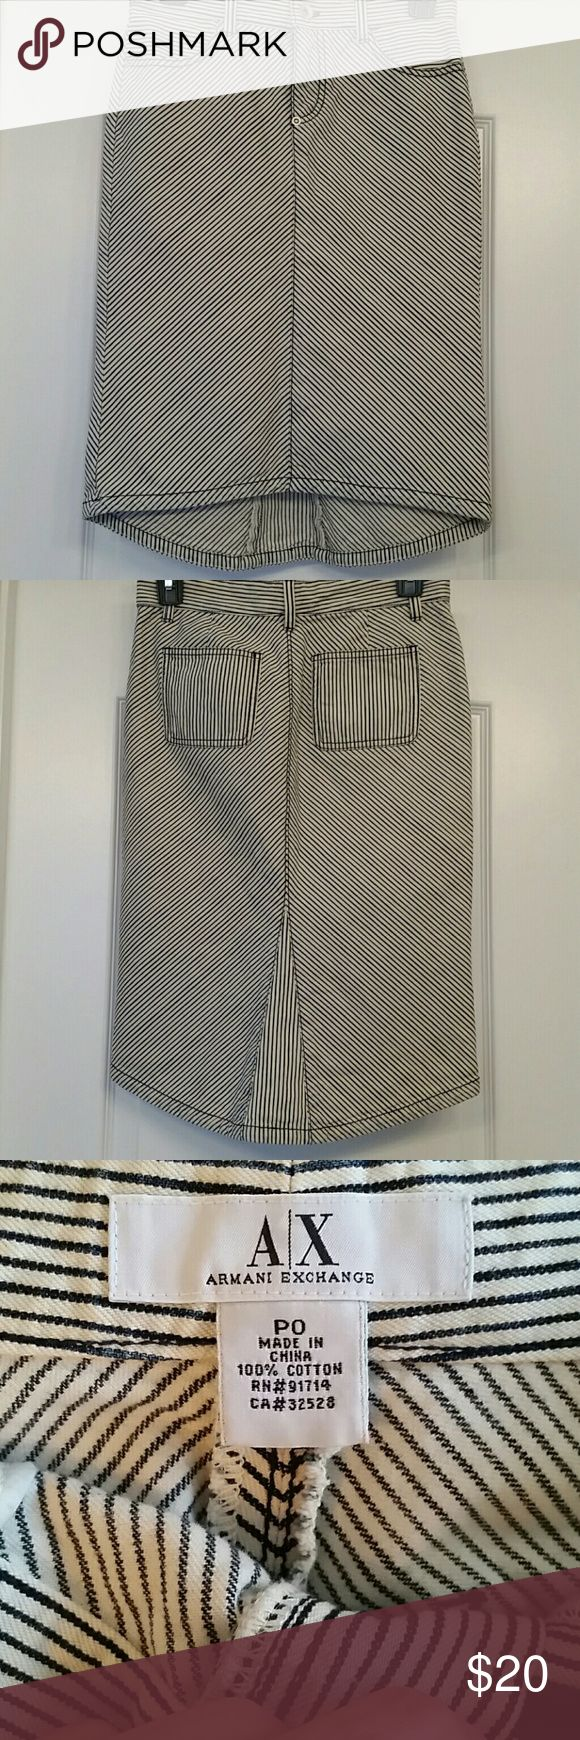 RESERVED*** Armani Exchange Skirt Beautiful Armani Exchange Jean skirt Armani Exchange Skirts High Low